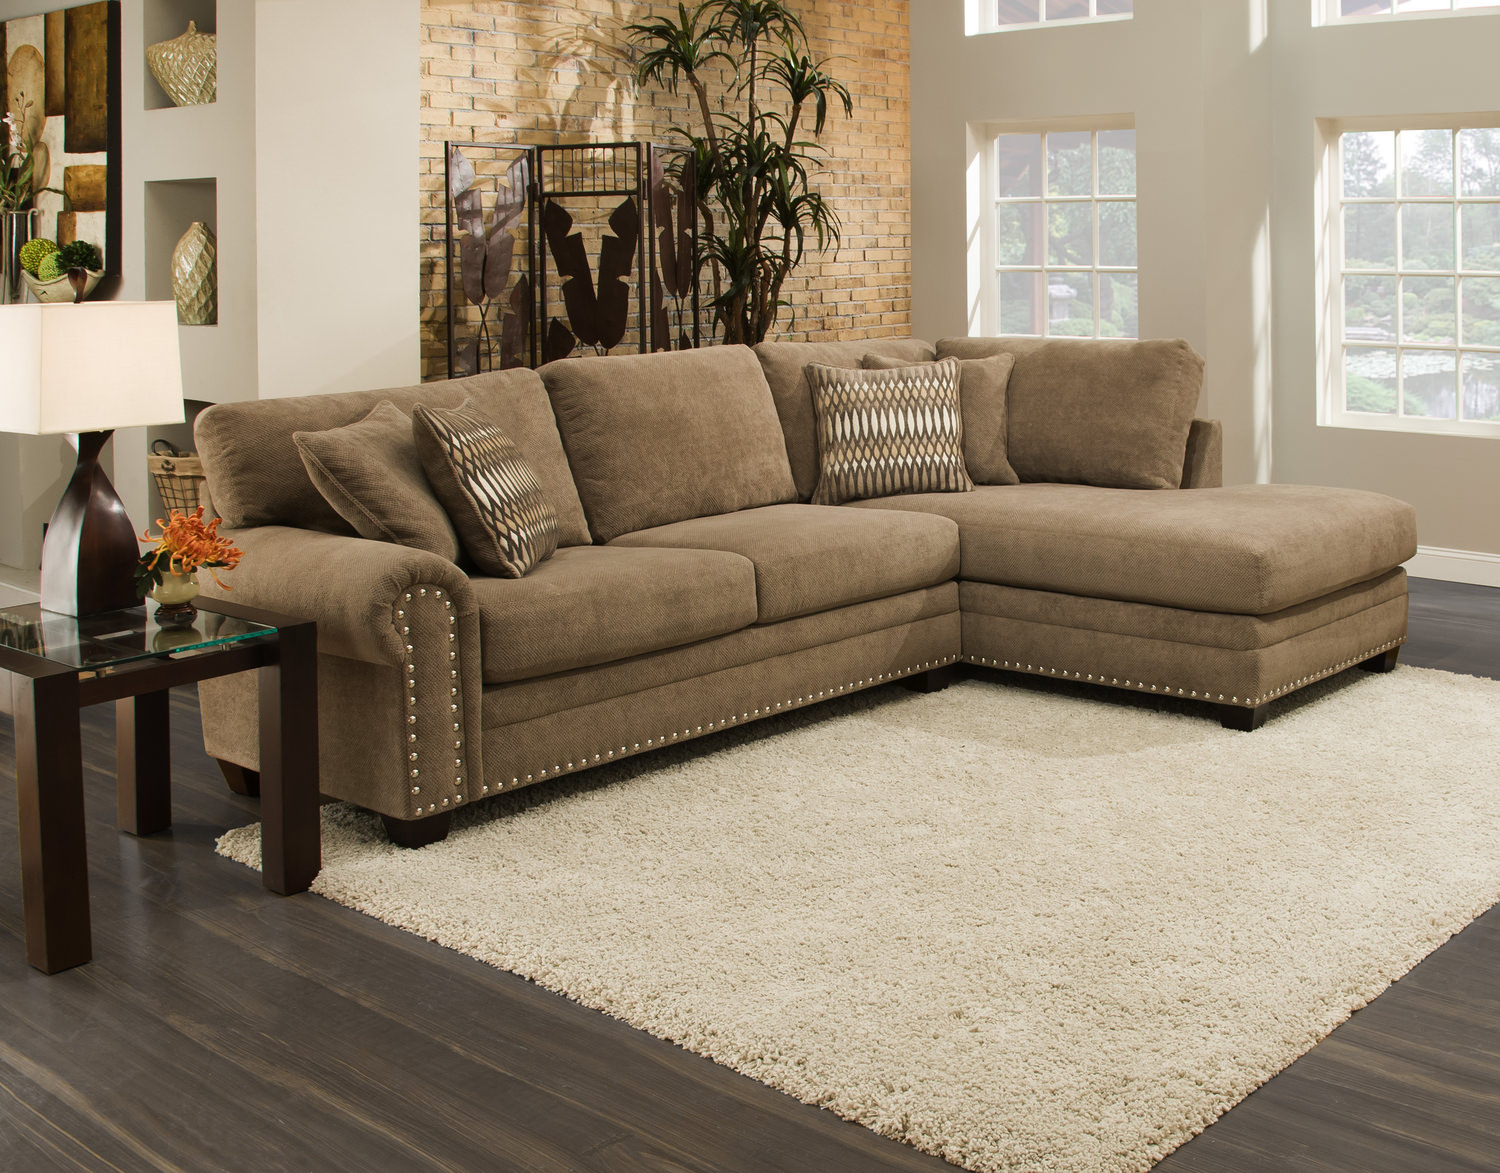 Cheap Sectional Couches | Modular Sectional | Microfiber Sectional